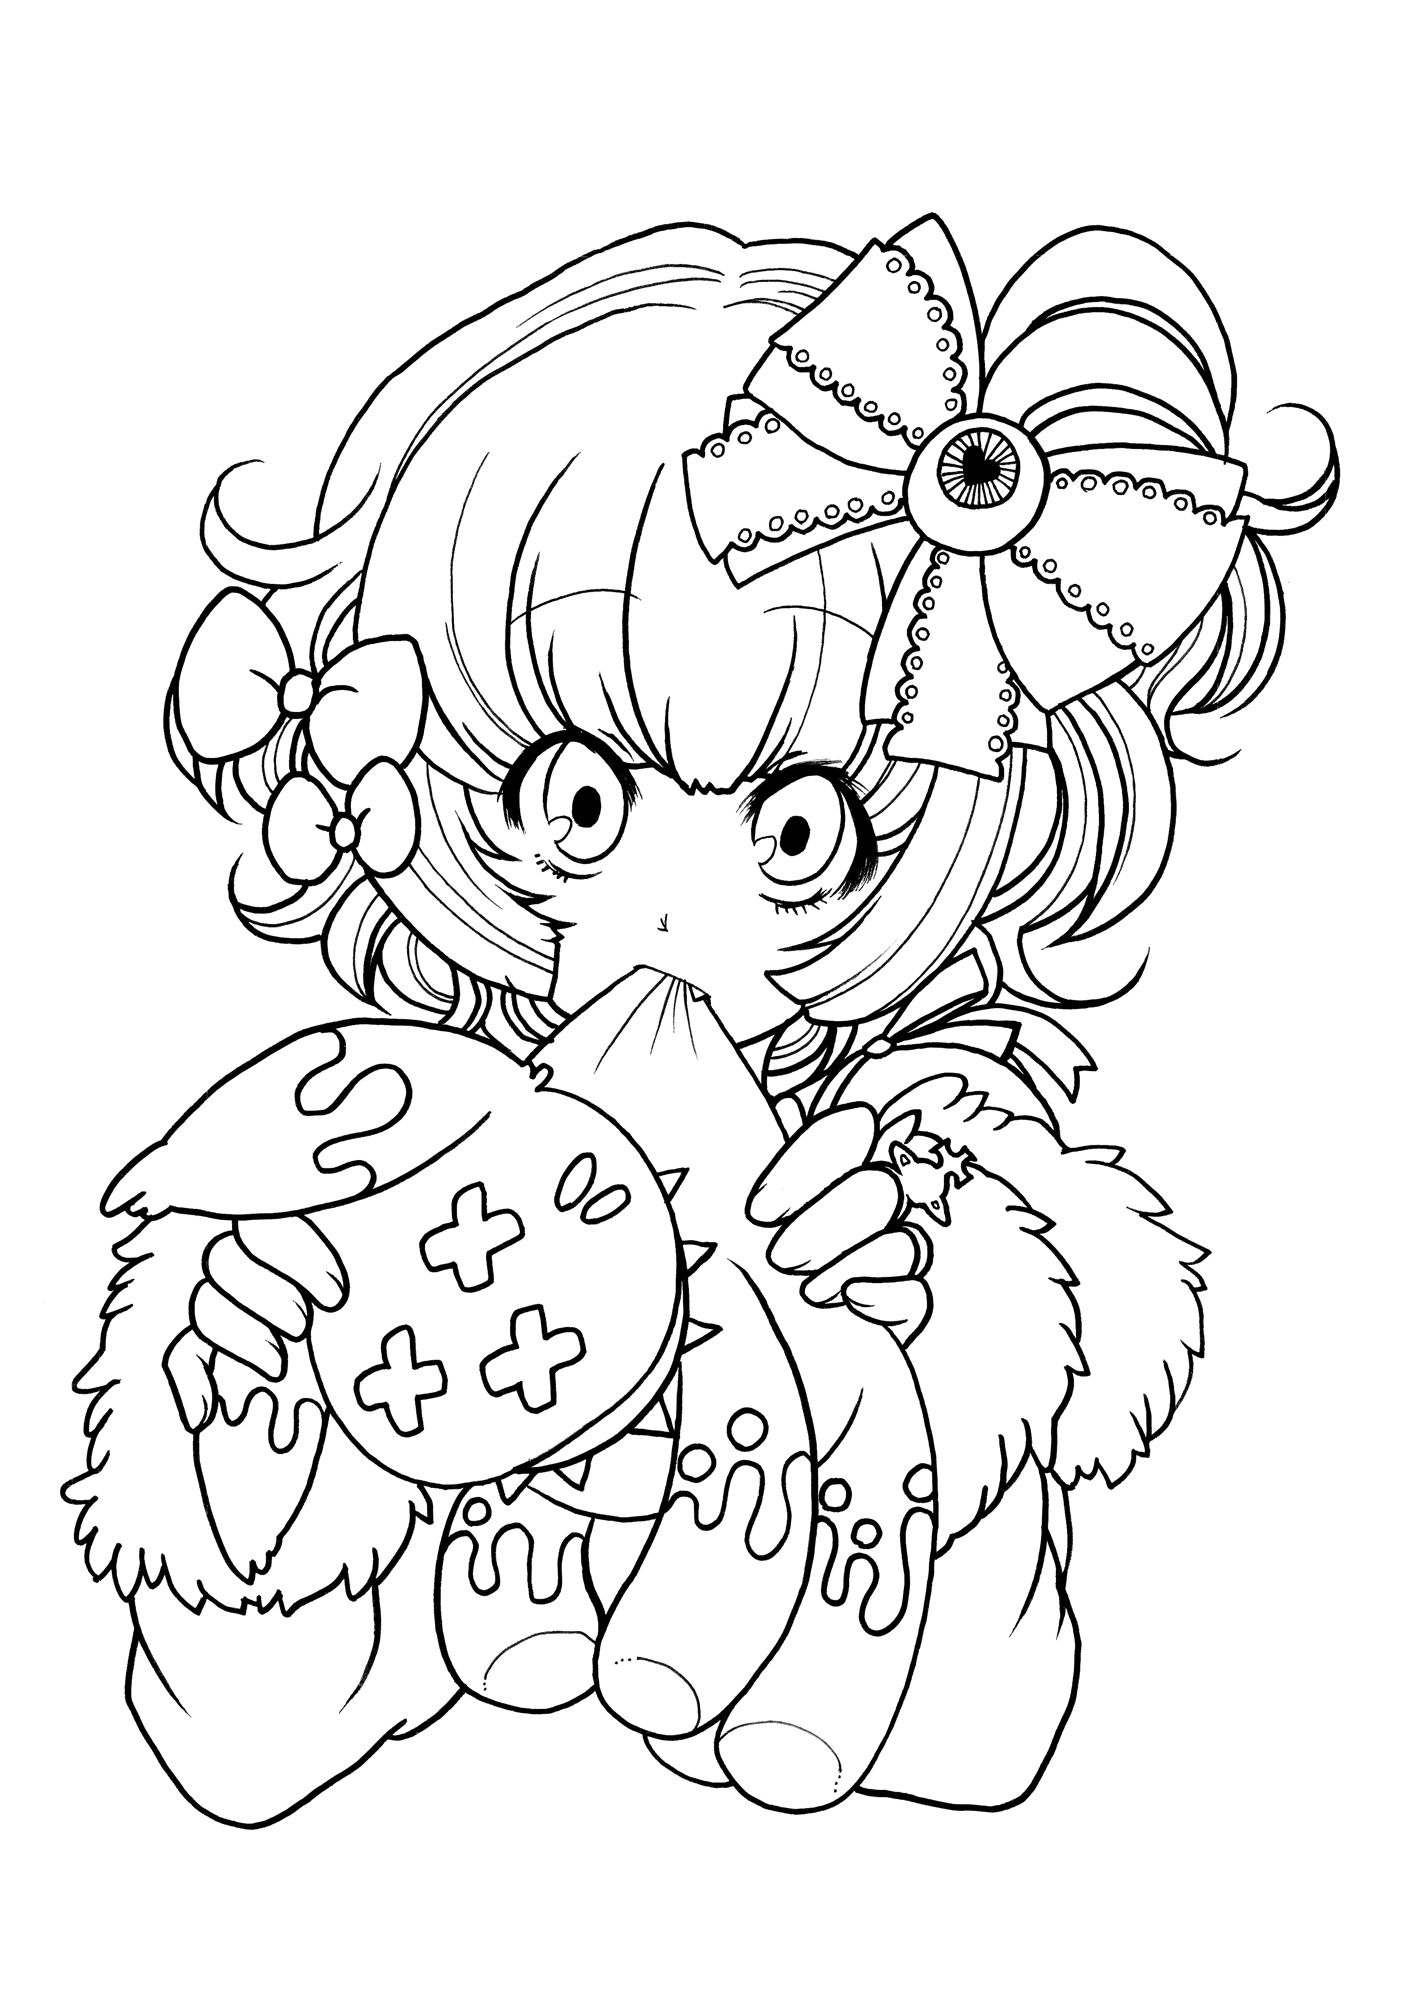 Anime Lineart Animal Coloring Pages Coloring Books Coloring Book Pages [ 2000 x 1414 Pixel ]